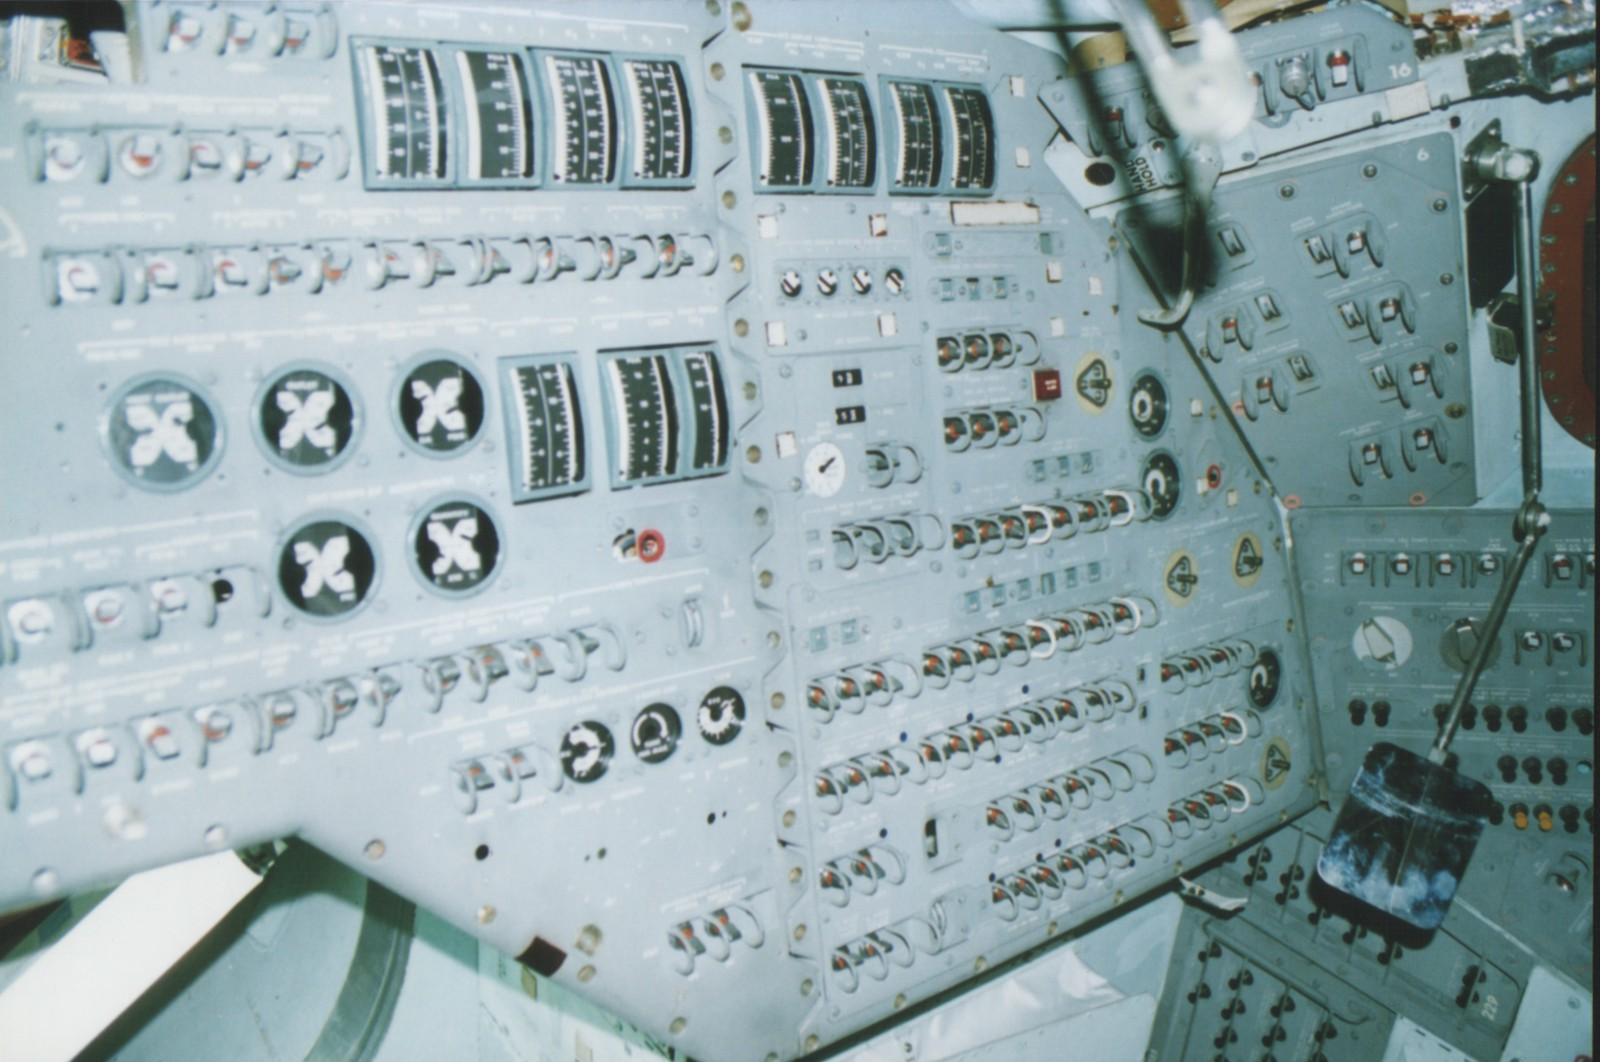 apollo capsule control panel - photo #9